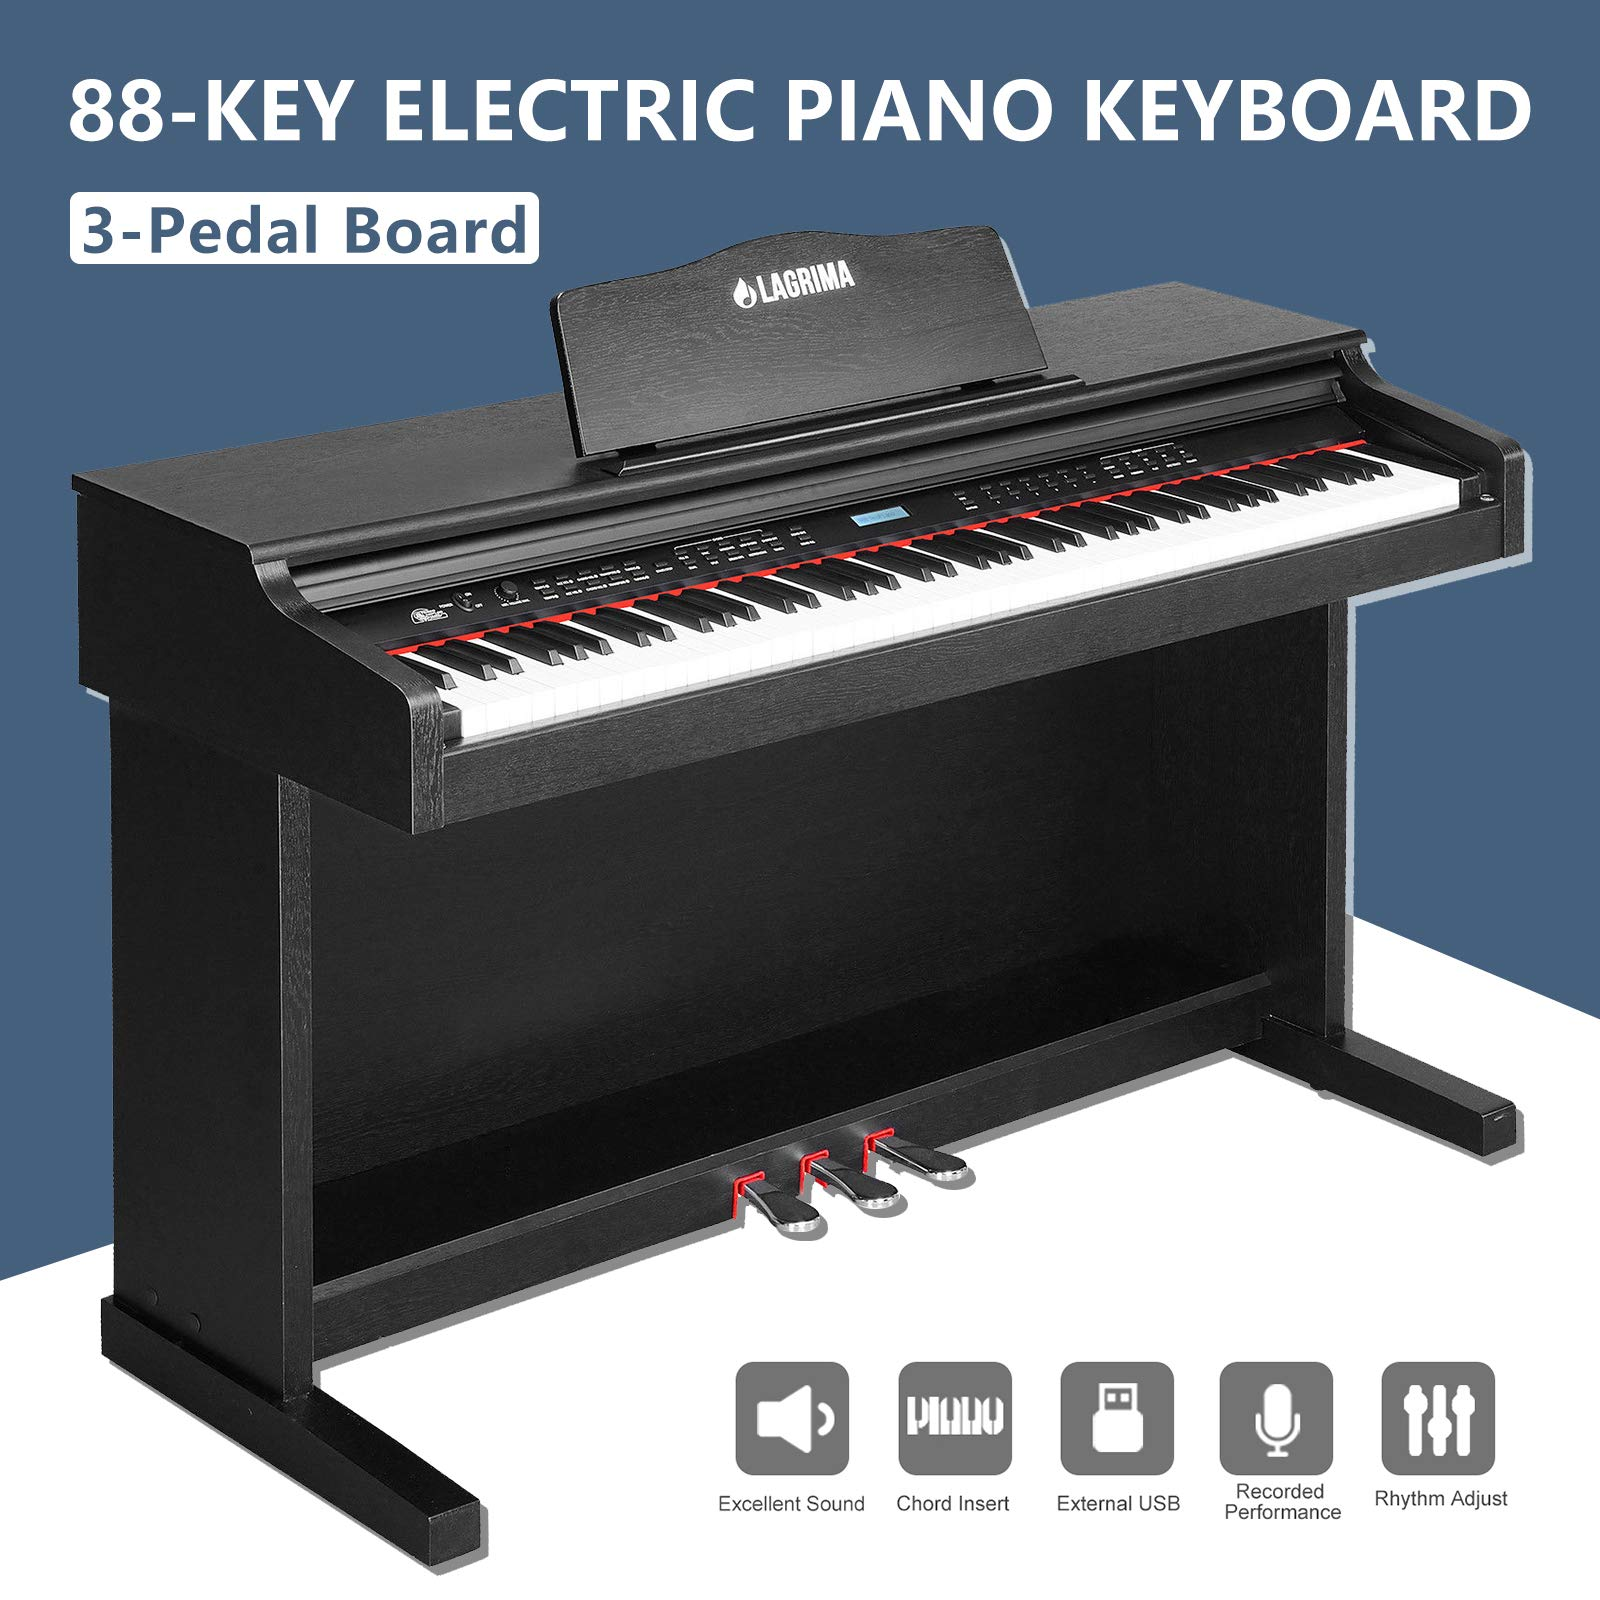 LAGRIMA Digital Piano, 88 Keys Electric Keyboard Piano for Beginner(Kids/Adults) w/Music Stand+Power Adapter+3 Metal Pedals+Instruction Book, 2 Headphone Jack/Midi/USB Audio Output by LAGRIMA (Image #2)